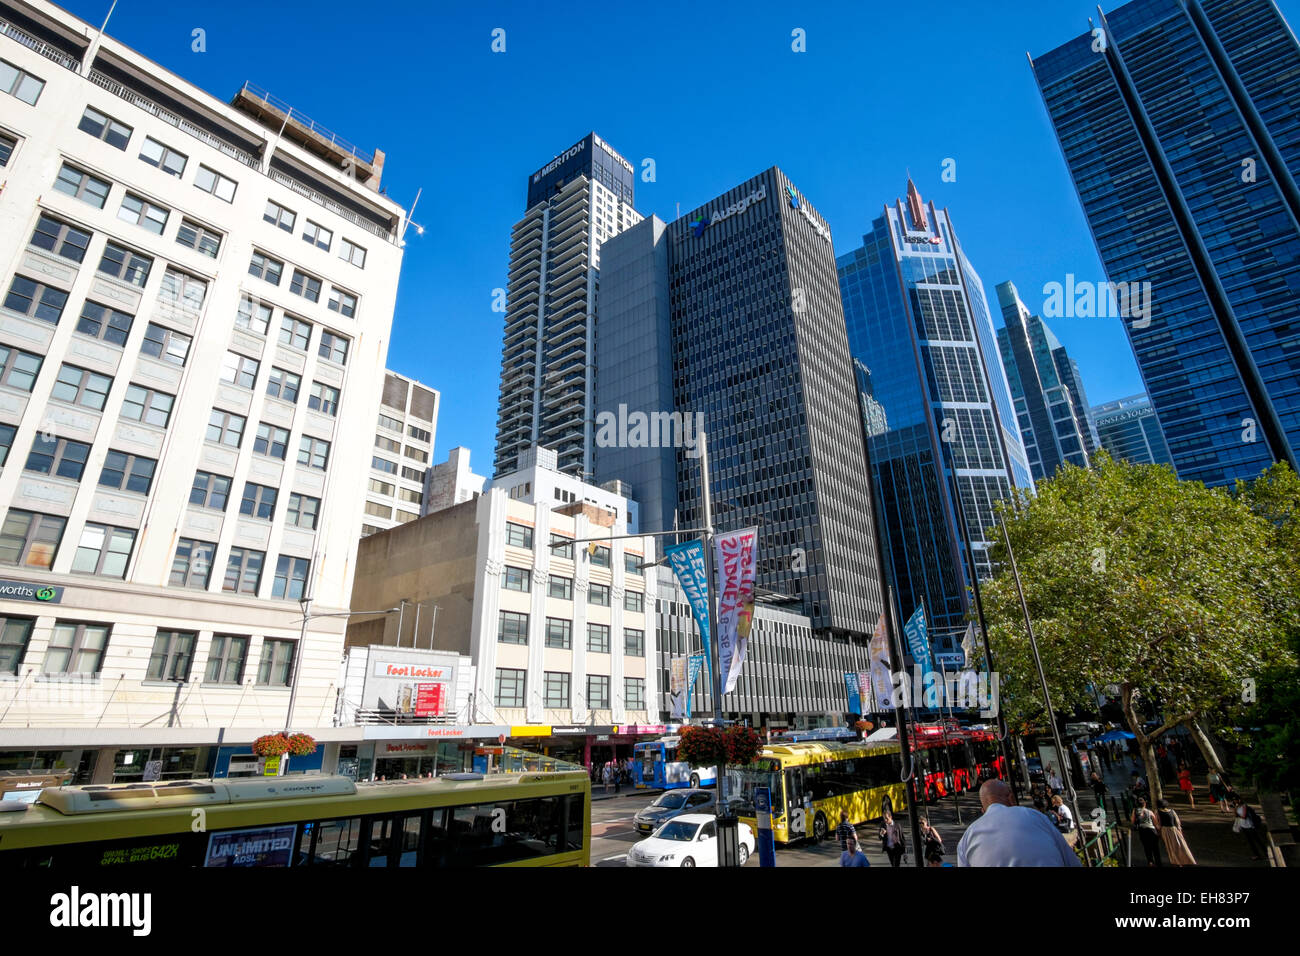 George Street, the main road right in the centre of Sydney, Australia; Town Hall Square; tall buildings; Sydney - Stock Image